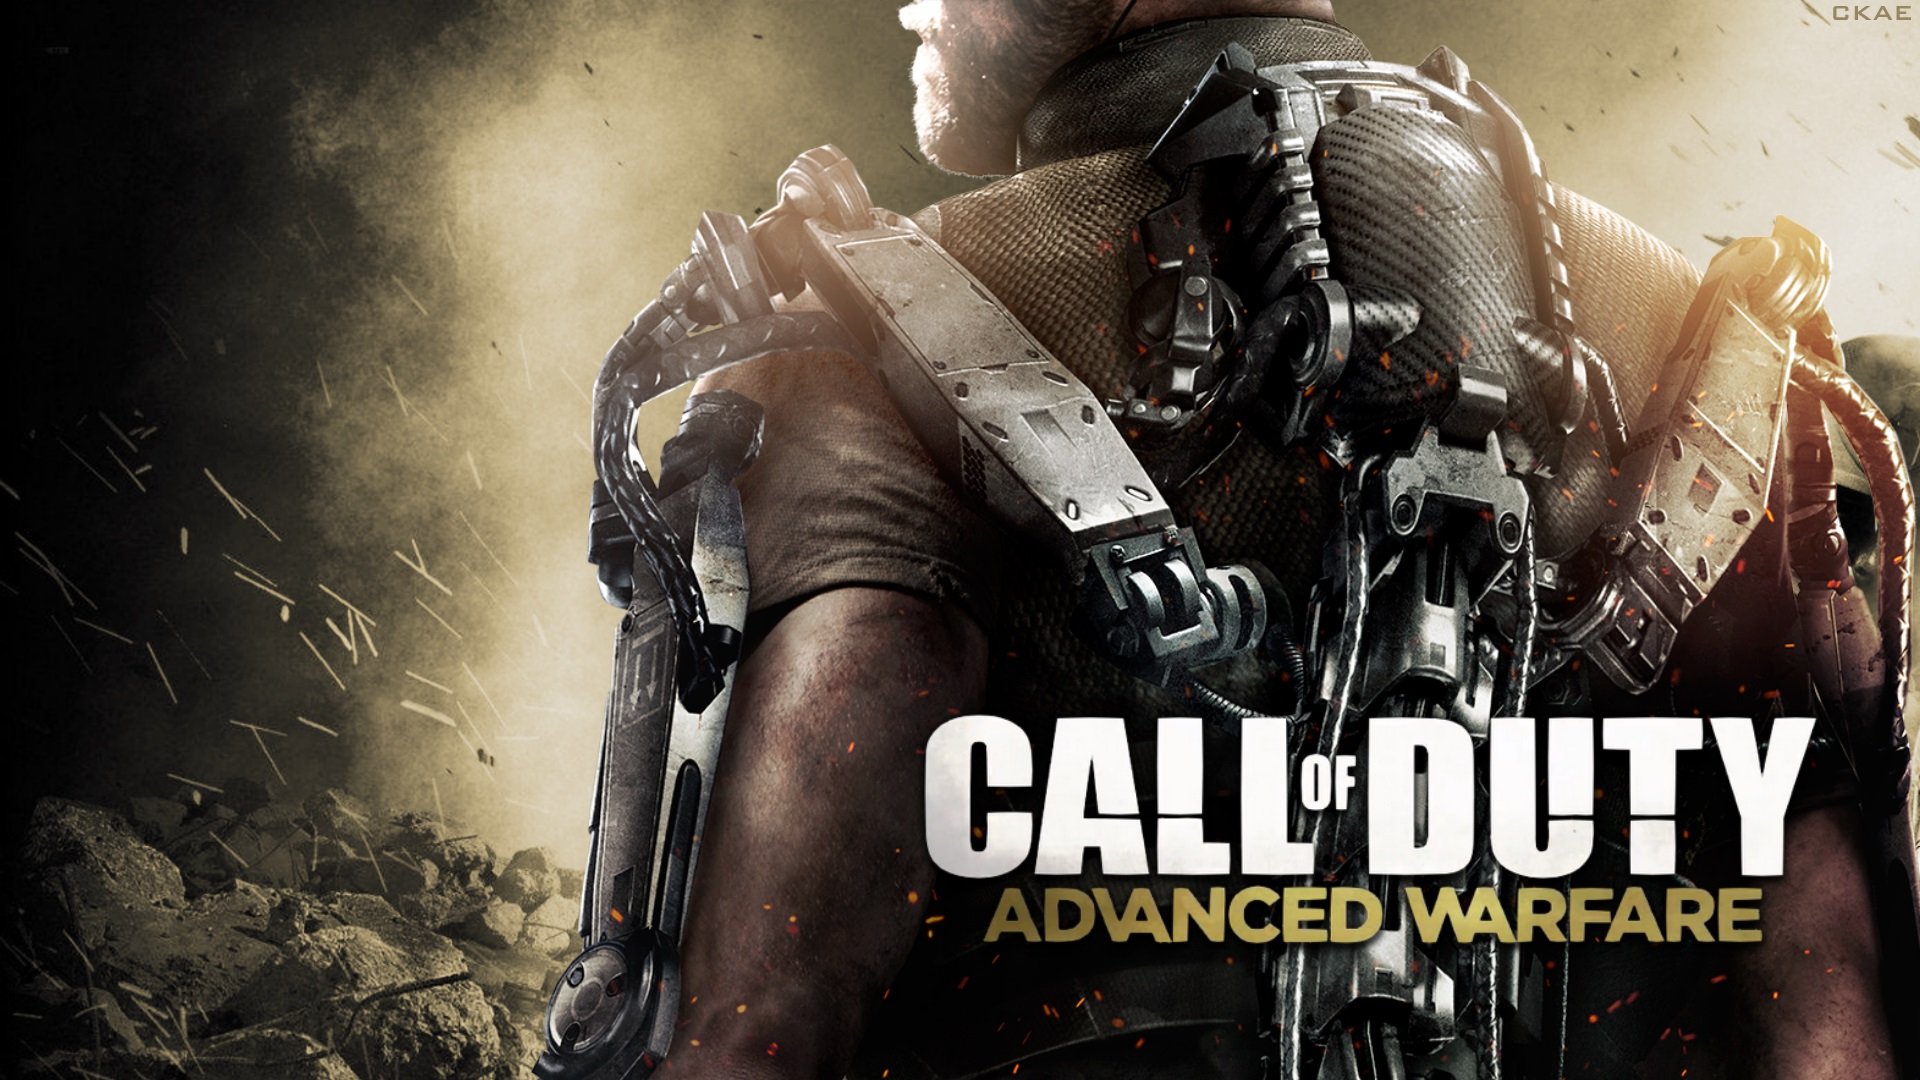 Call of duty advanced warfare hd wallpaper collection 247 gaming